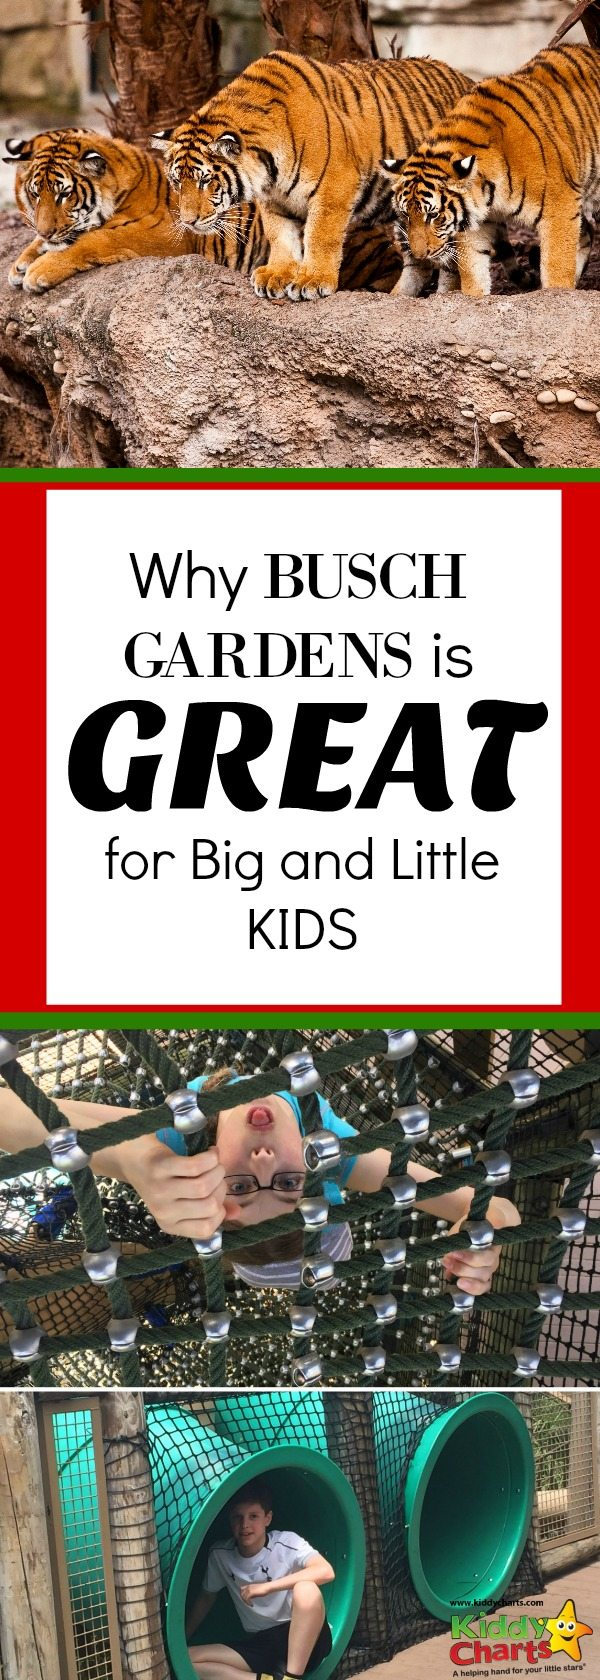 Busch Gardens Tampa is a perfect place to go, both for the big and little kids in the family - why not pop over to the site and find out why?